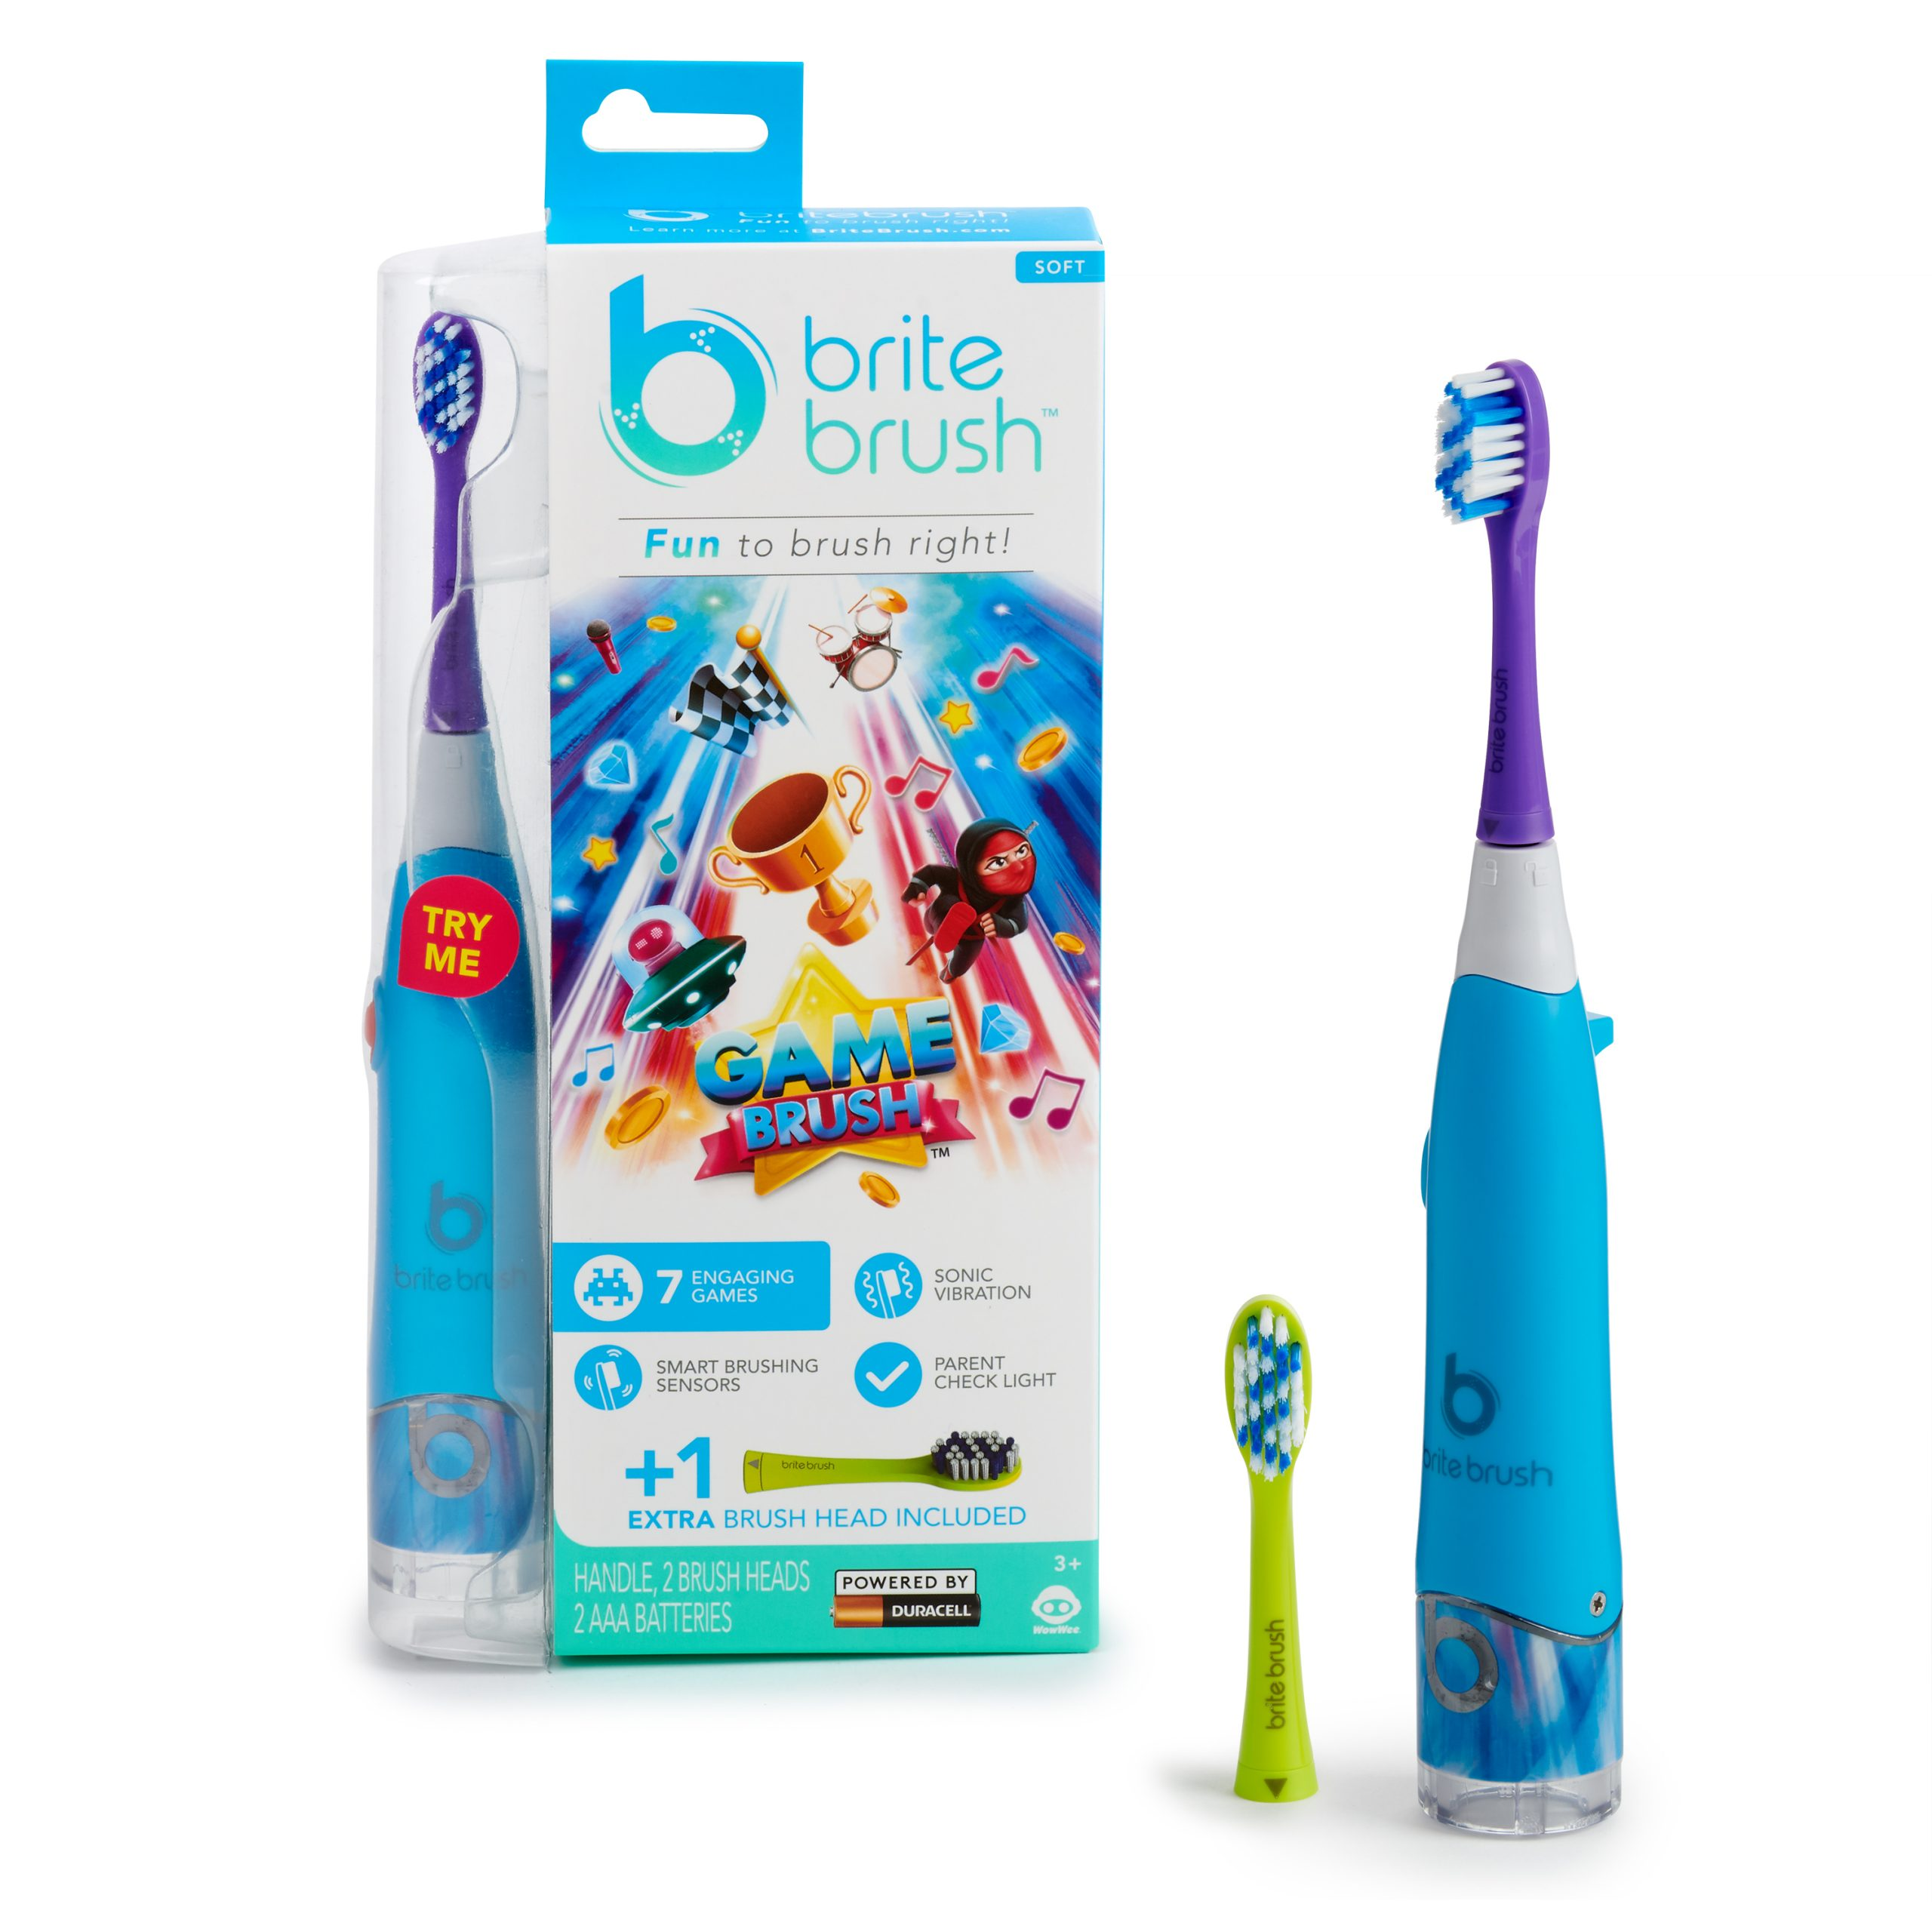 BriteBrush GameBrush